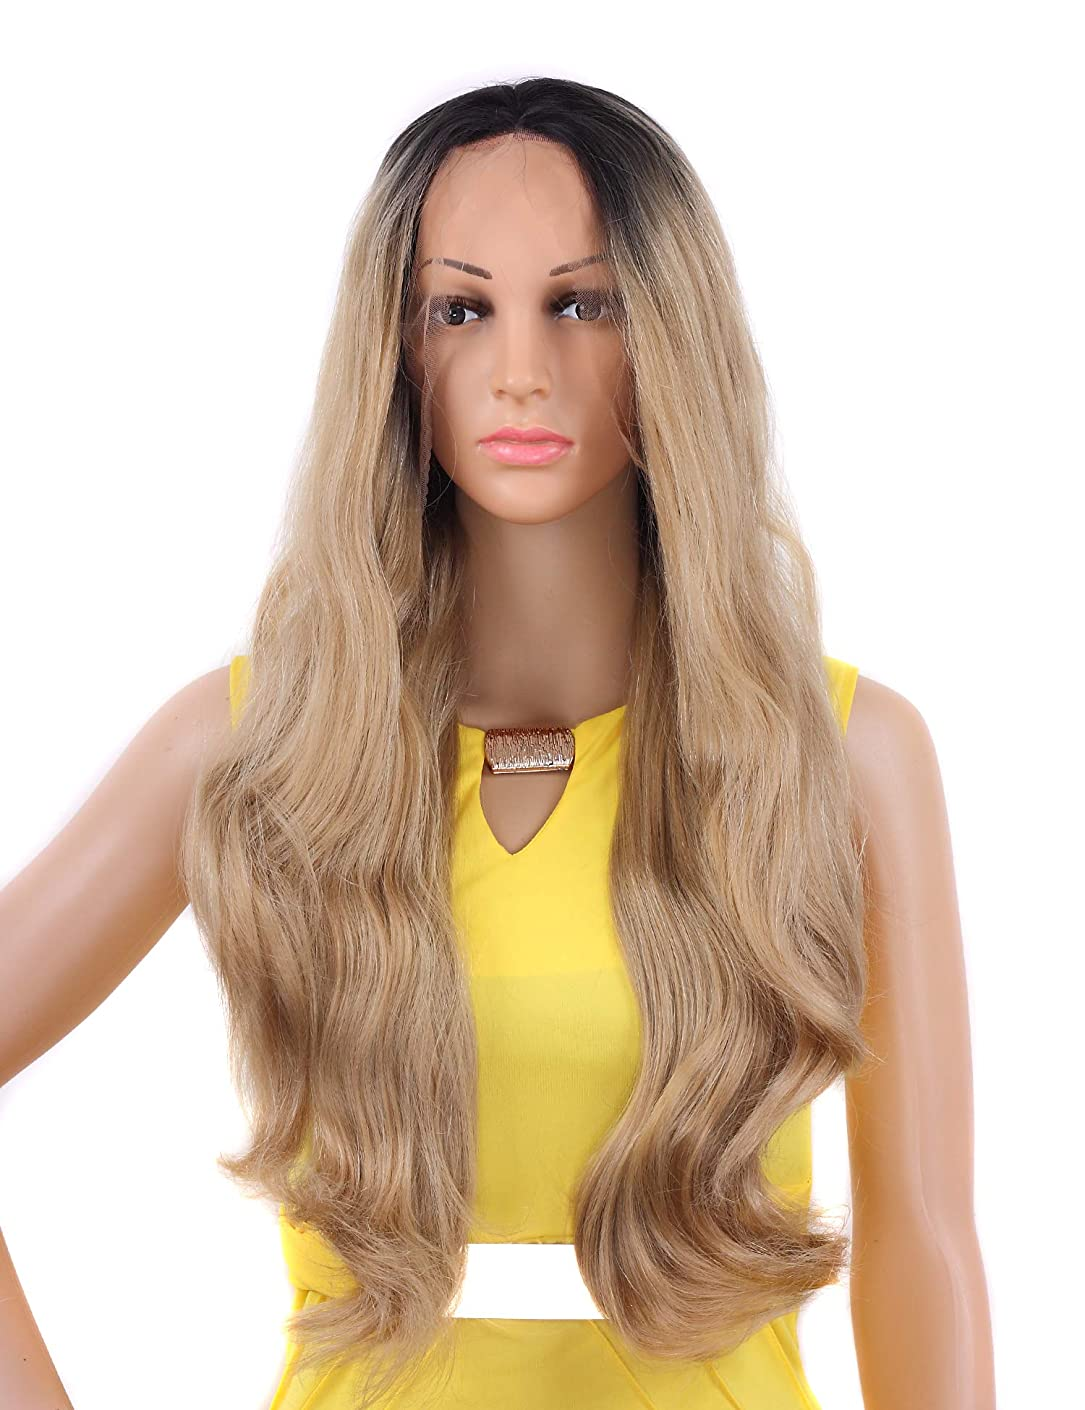 Tripal Hairs Ombre Blonde Lace Front Wigs for White Women Natural Wavy Heat Resistant Wig 22 Inches